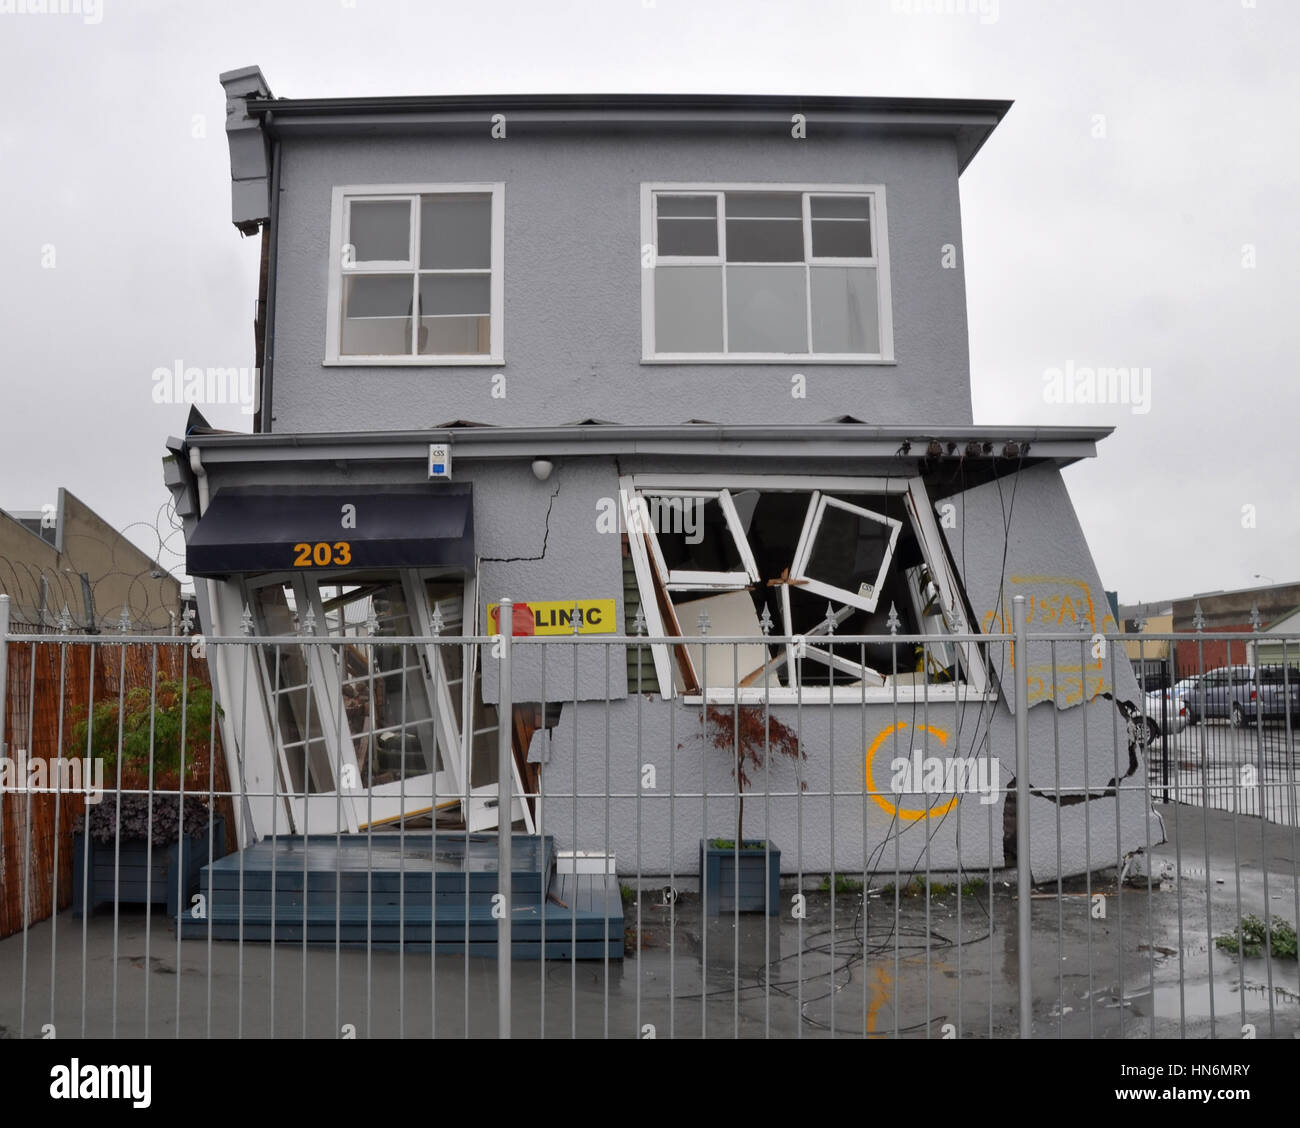 Christchurch, New Zealand - March 20, 2011: A house in the east of the city leans precariously after the 22 Februray Stock Photo